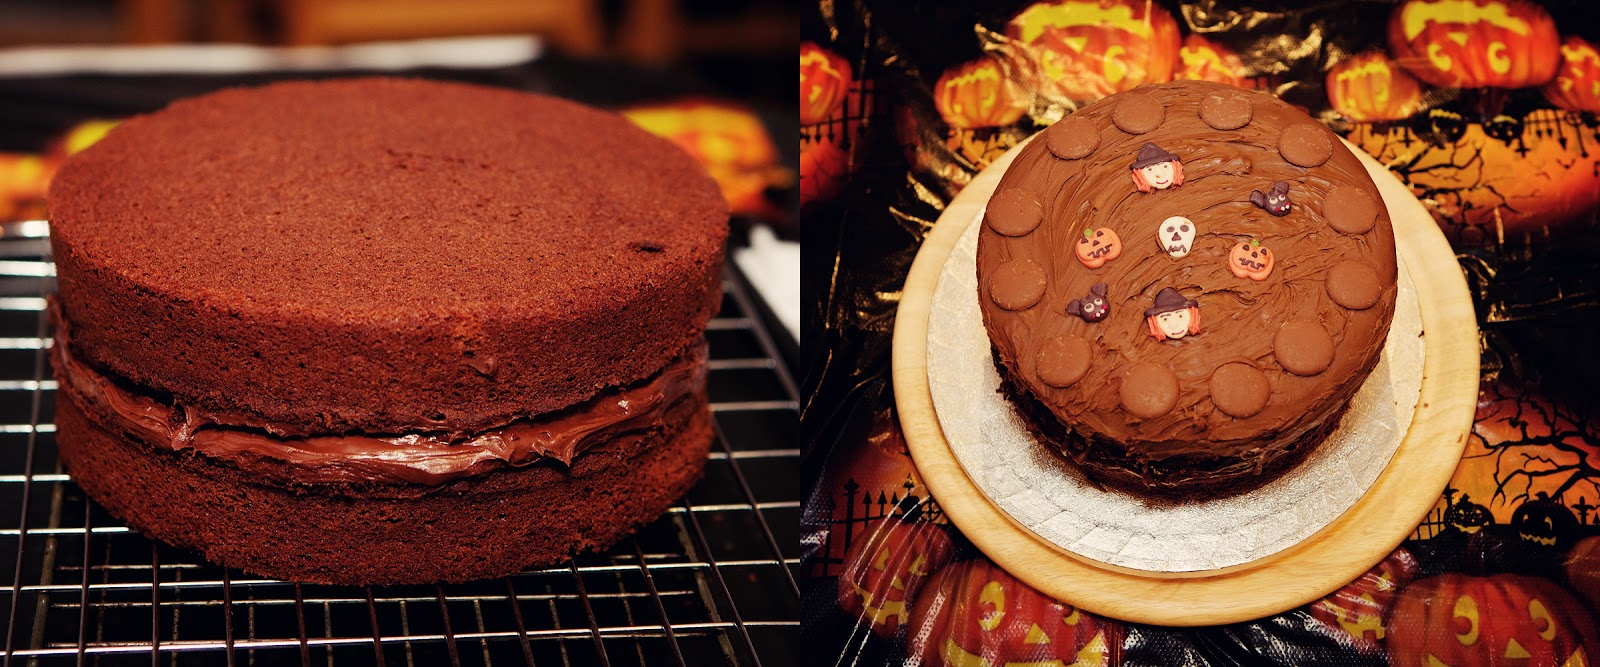 Chocolate Sponge Cake Recipe Jamie Oliver: Halloween Chocolate Party Cake